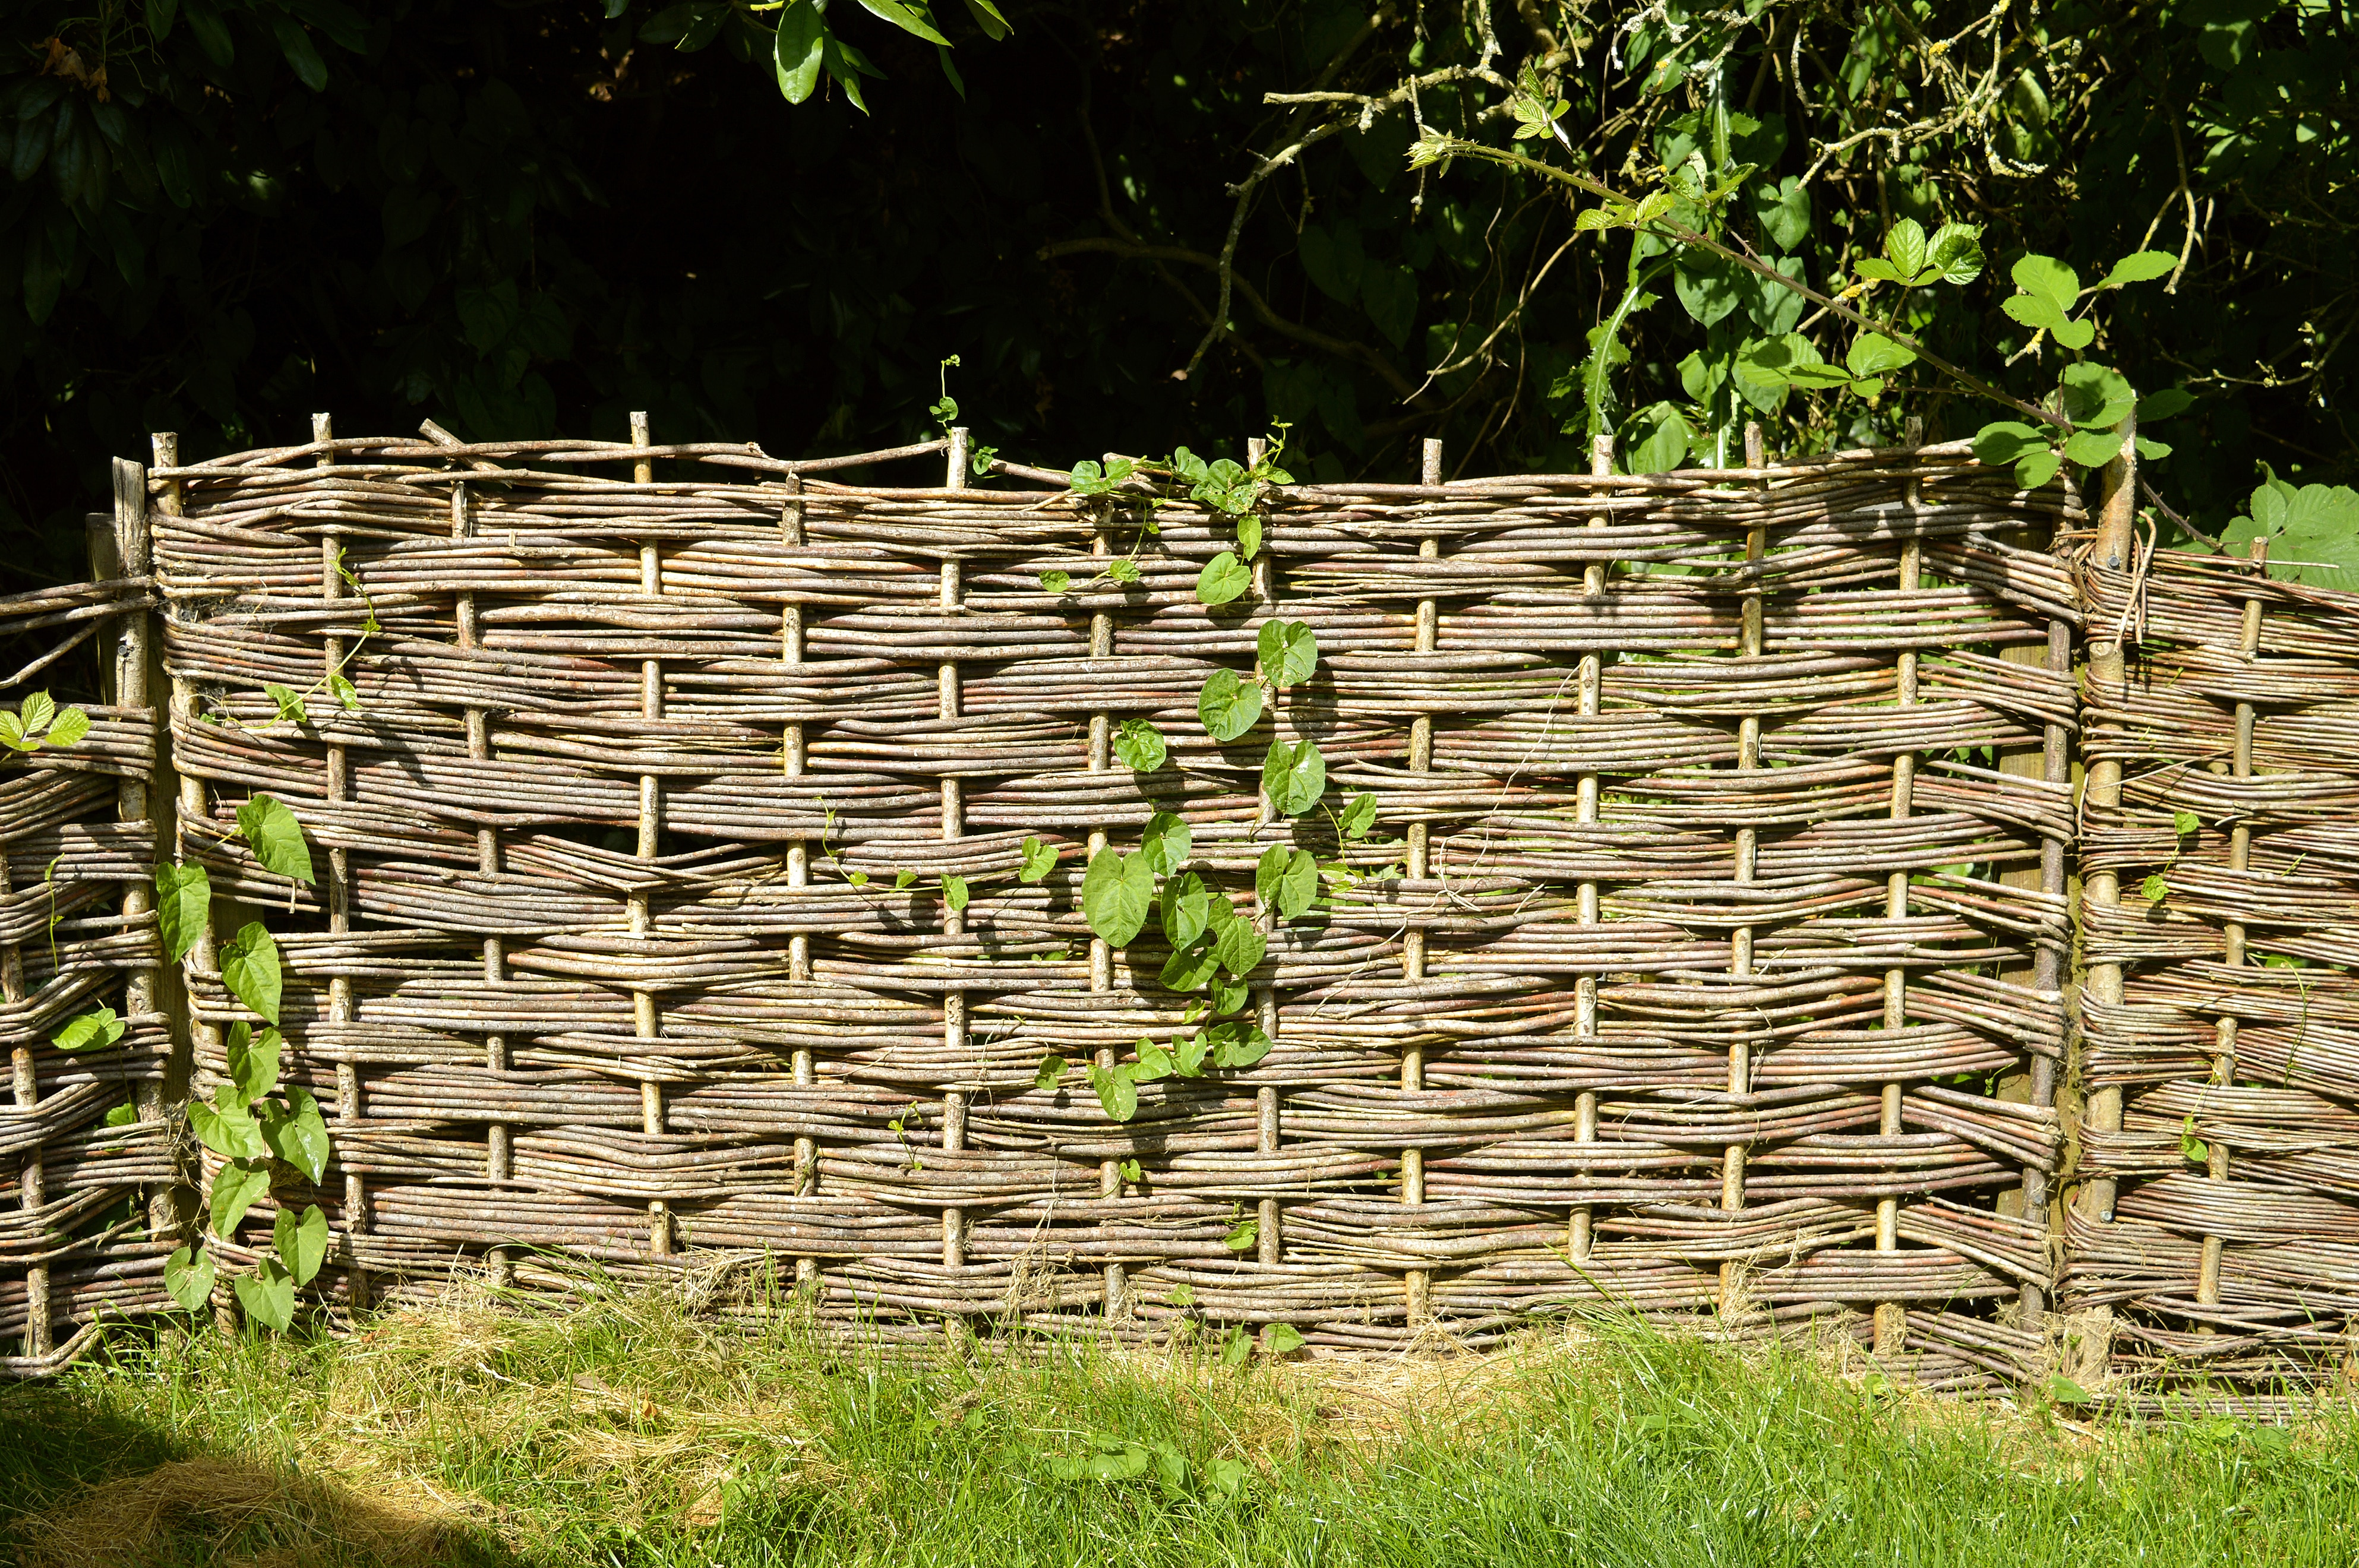 Wattle fences are lightweight construction material made by weaving thin branches